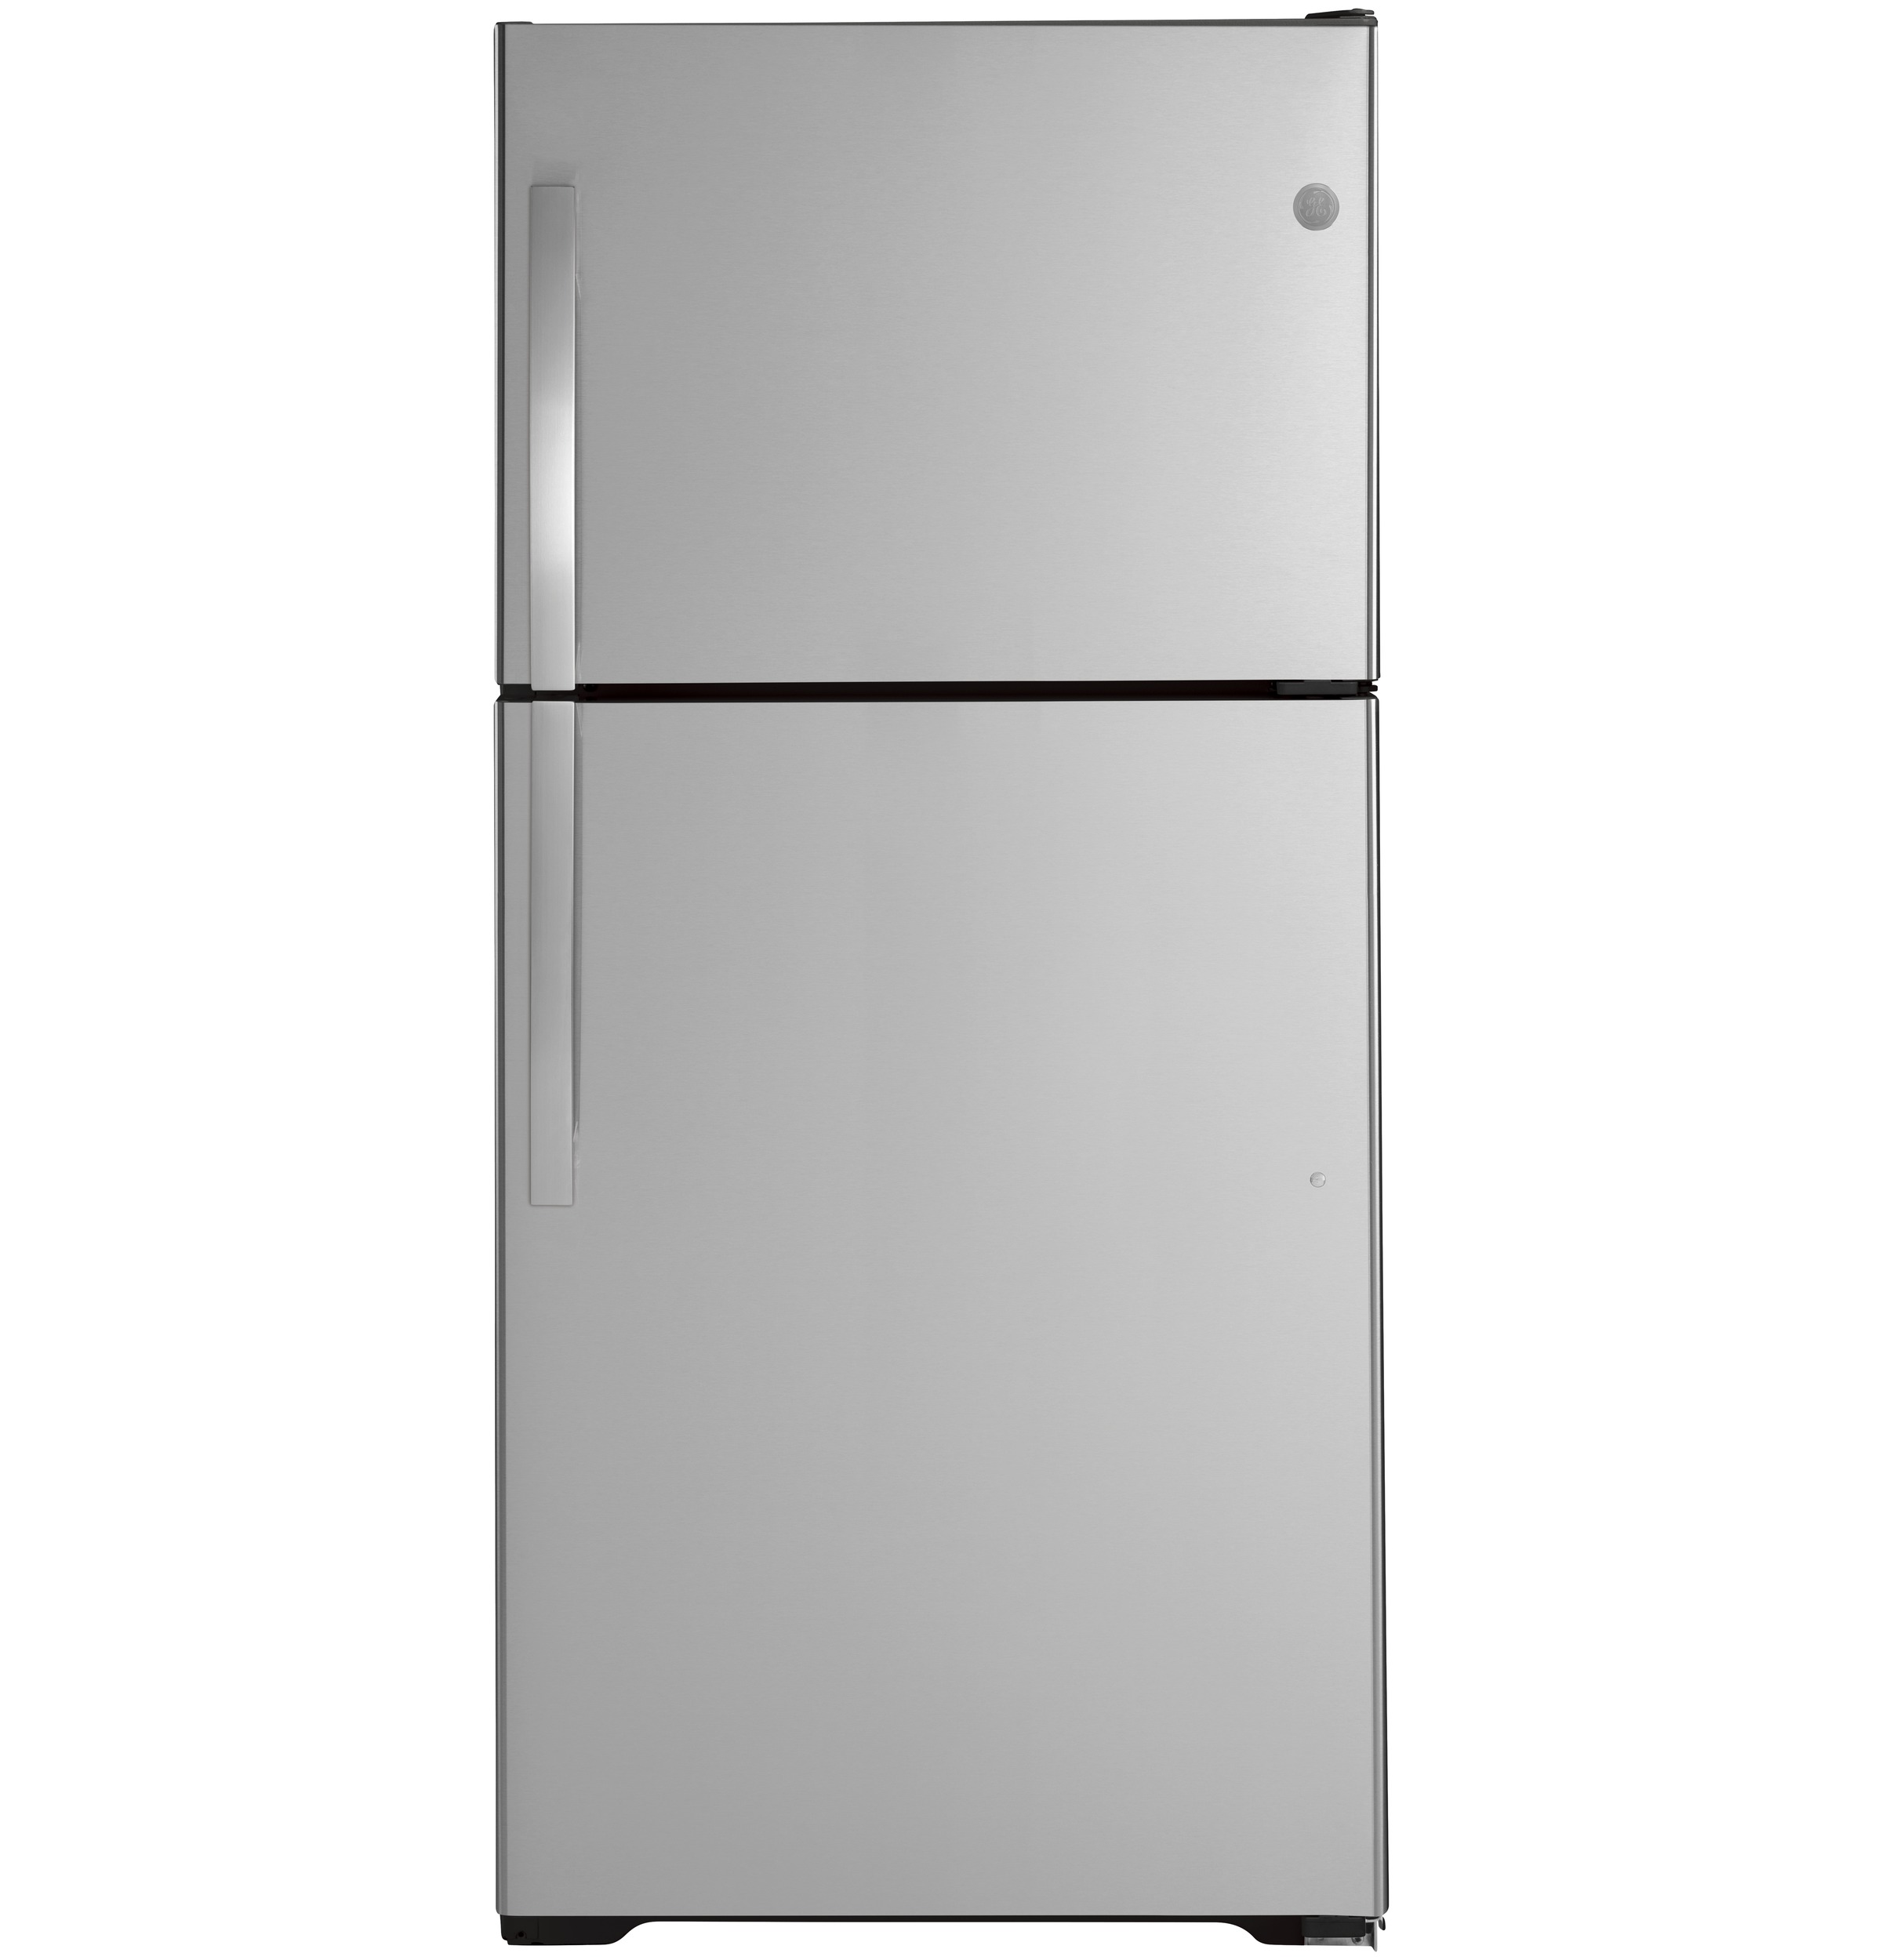 GE GE® ENERGY STAR® 19.2 Cu. Ft. Top-Freezer Refrigerator